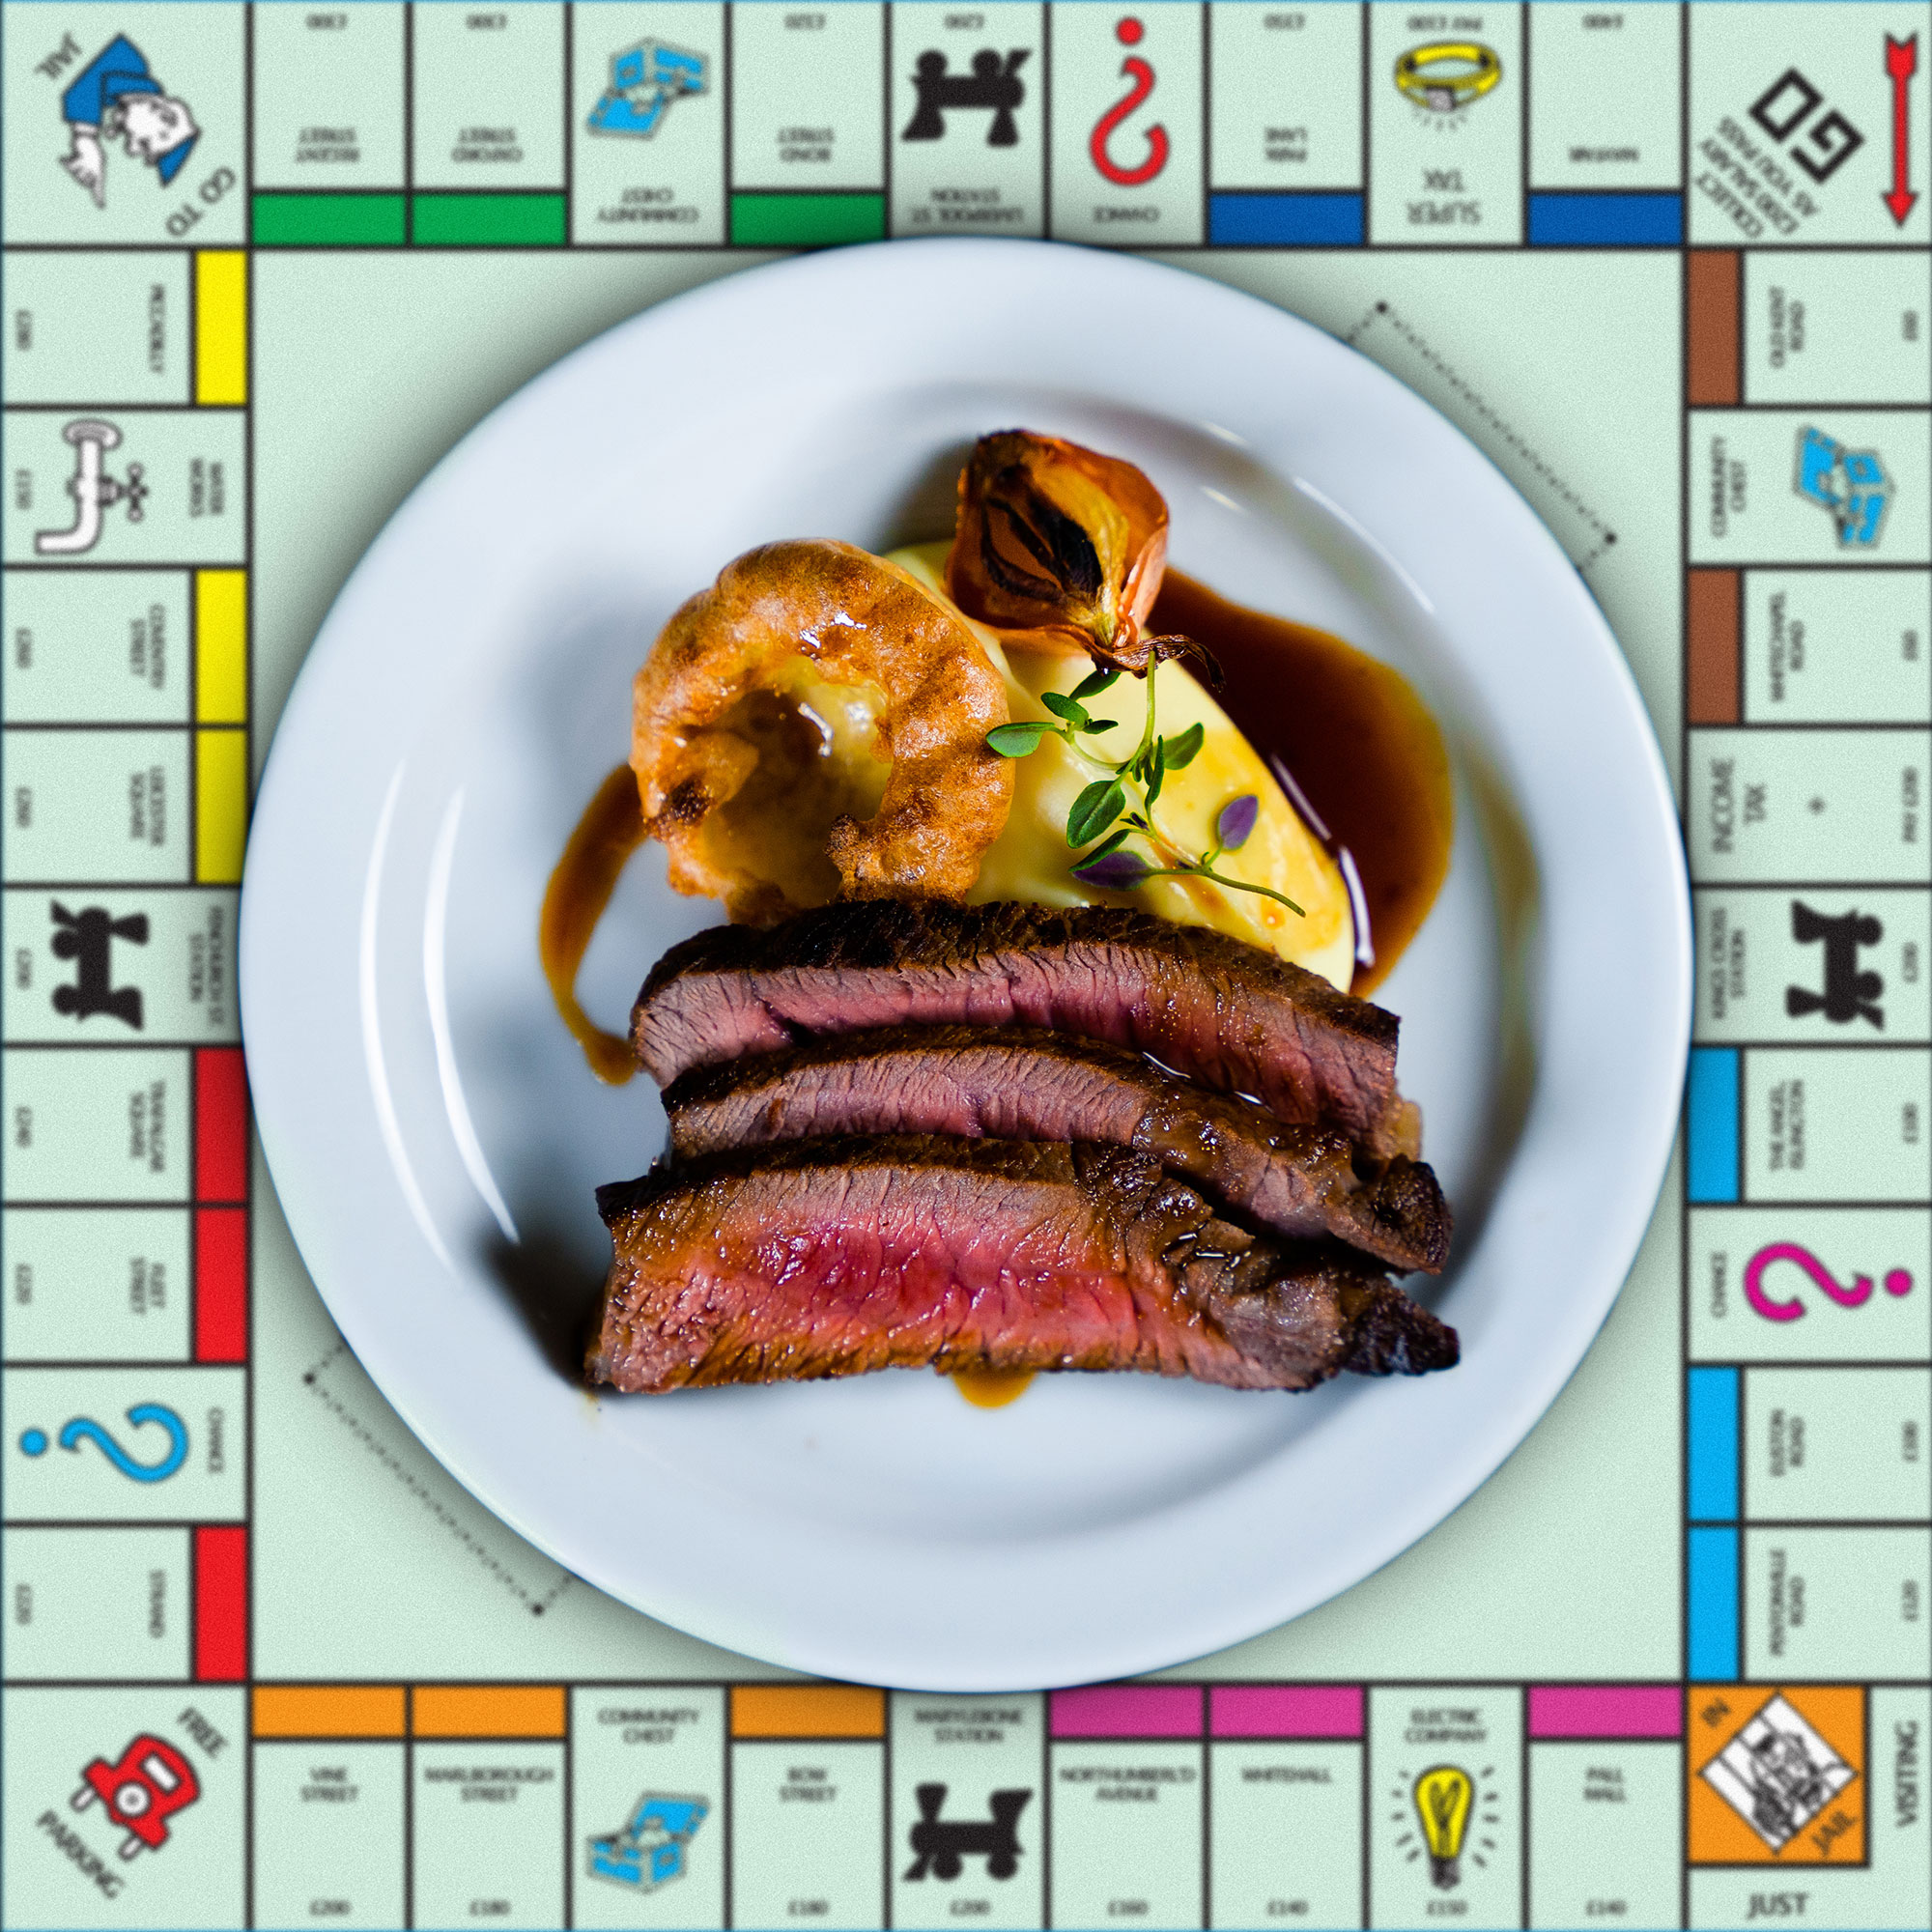 The Top Hat Monopoly-themed restaurant steak